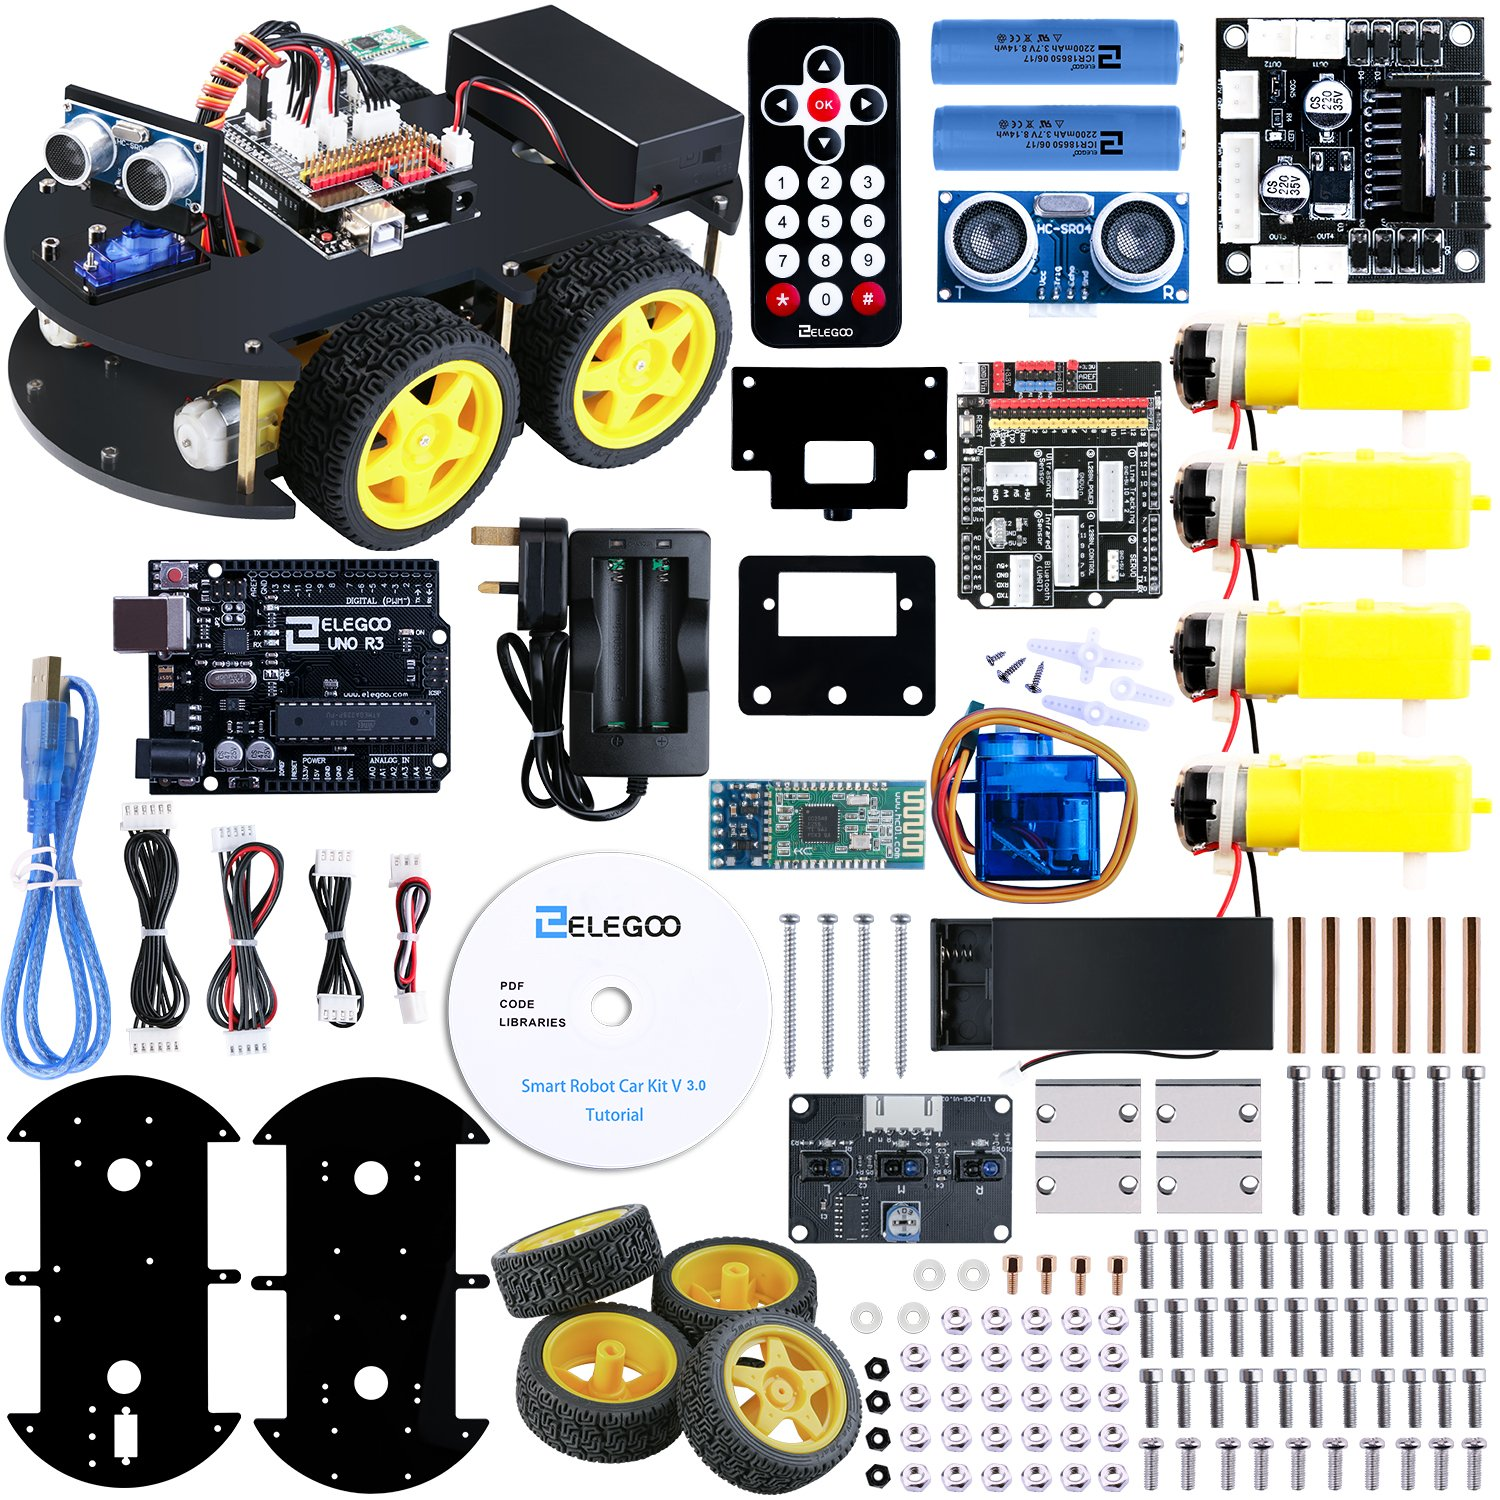 Elegoo UNO Project Smart Robot Car Kit V 3 0 with UNO R3 Line